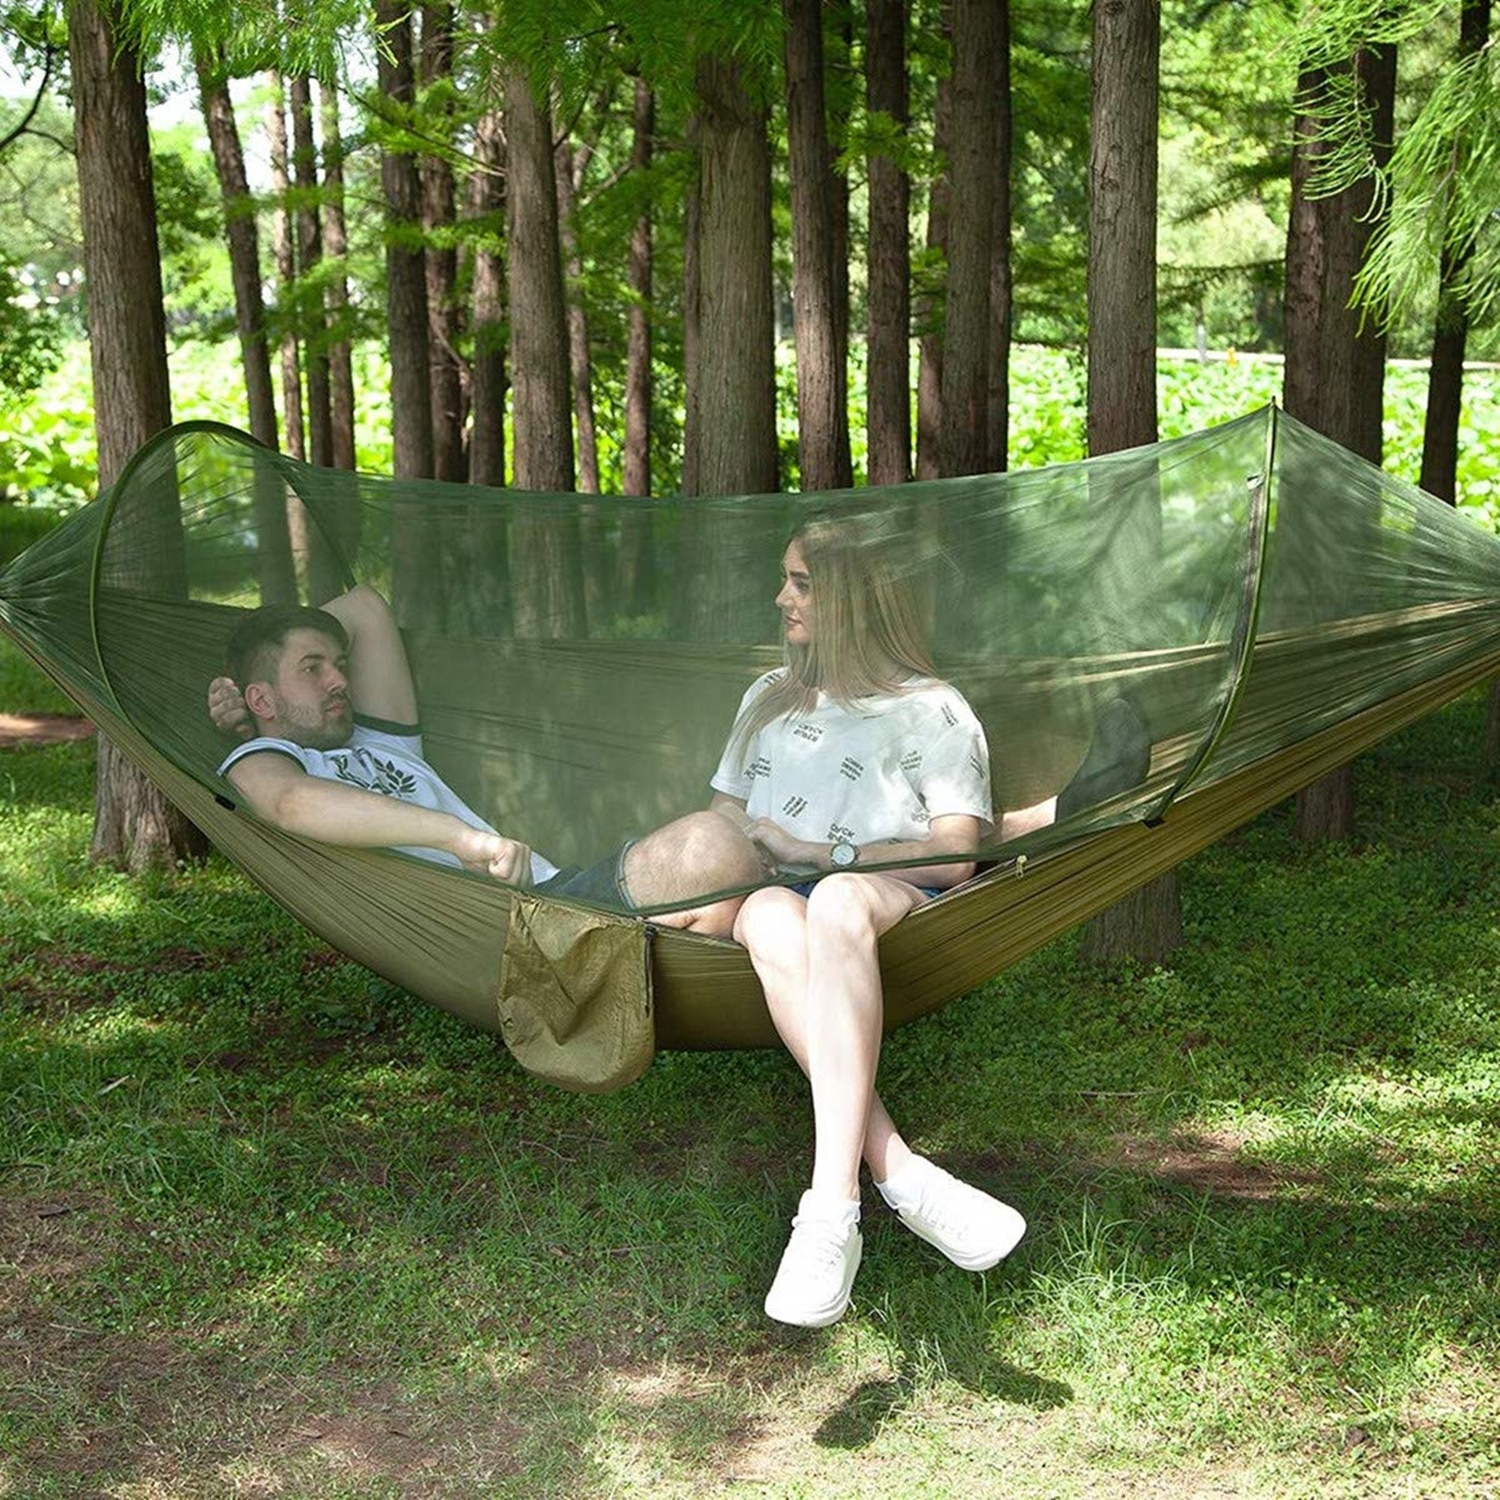 Yooap double camping hammock with mosquito net / insect net, light and durable travel hammock portable quick-drying